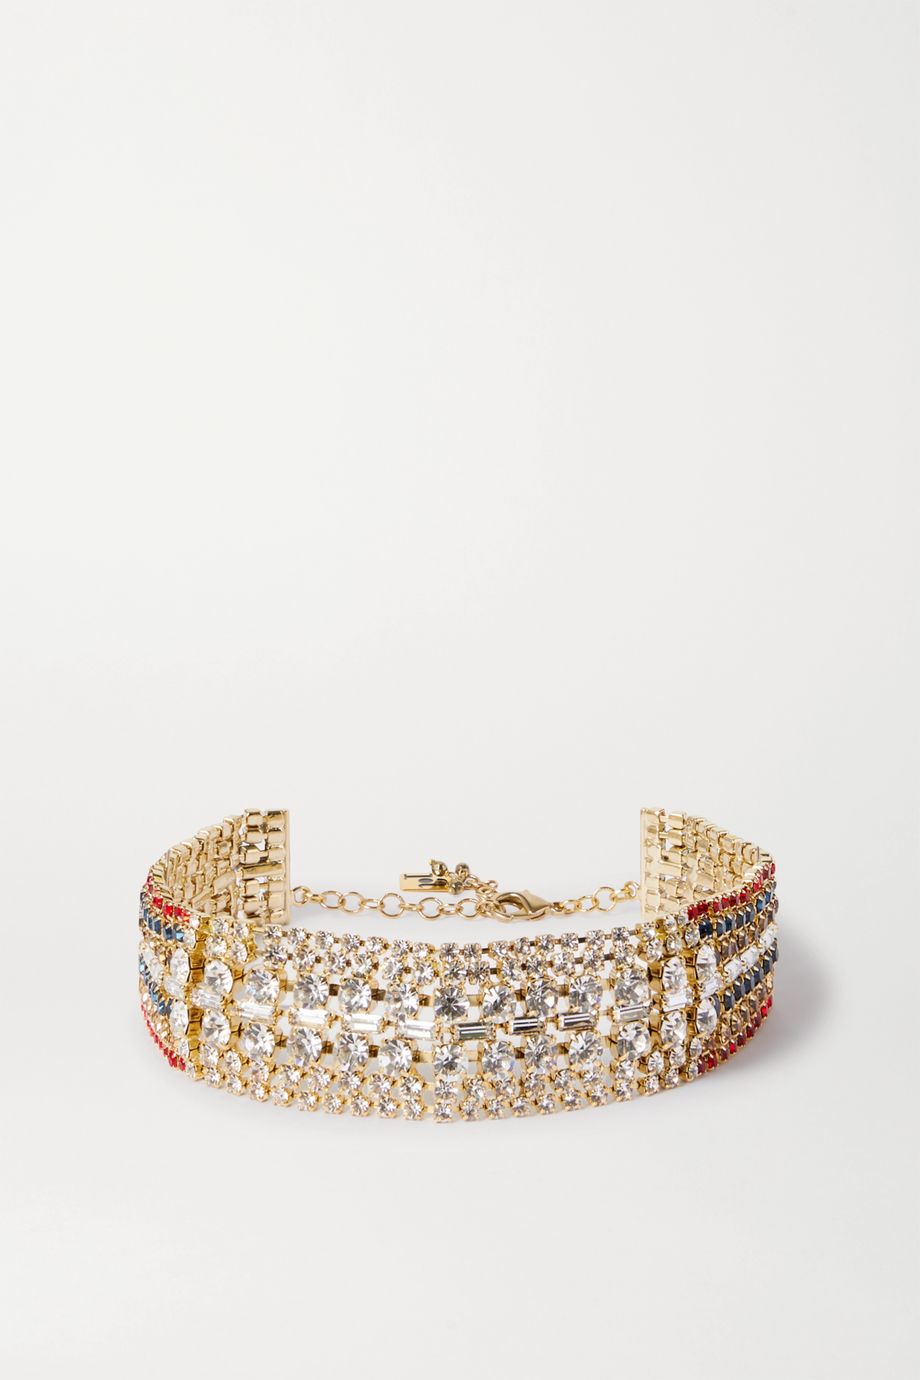 Rosantica Luci gold-tone crystal choker